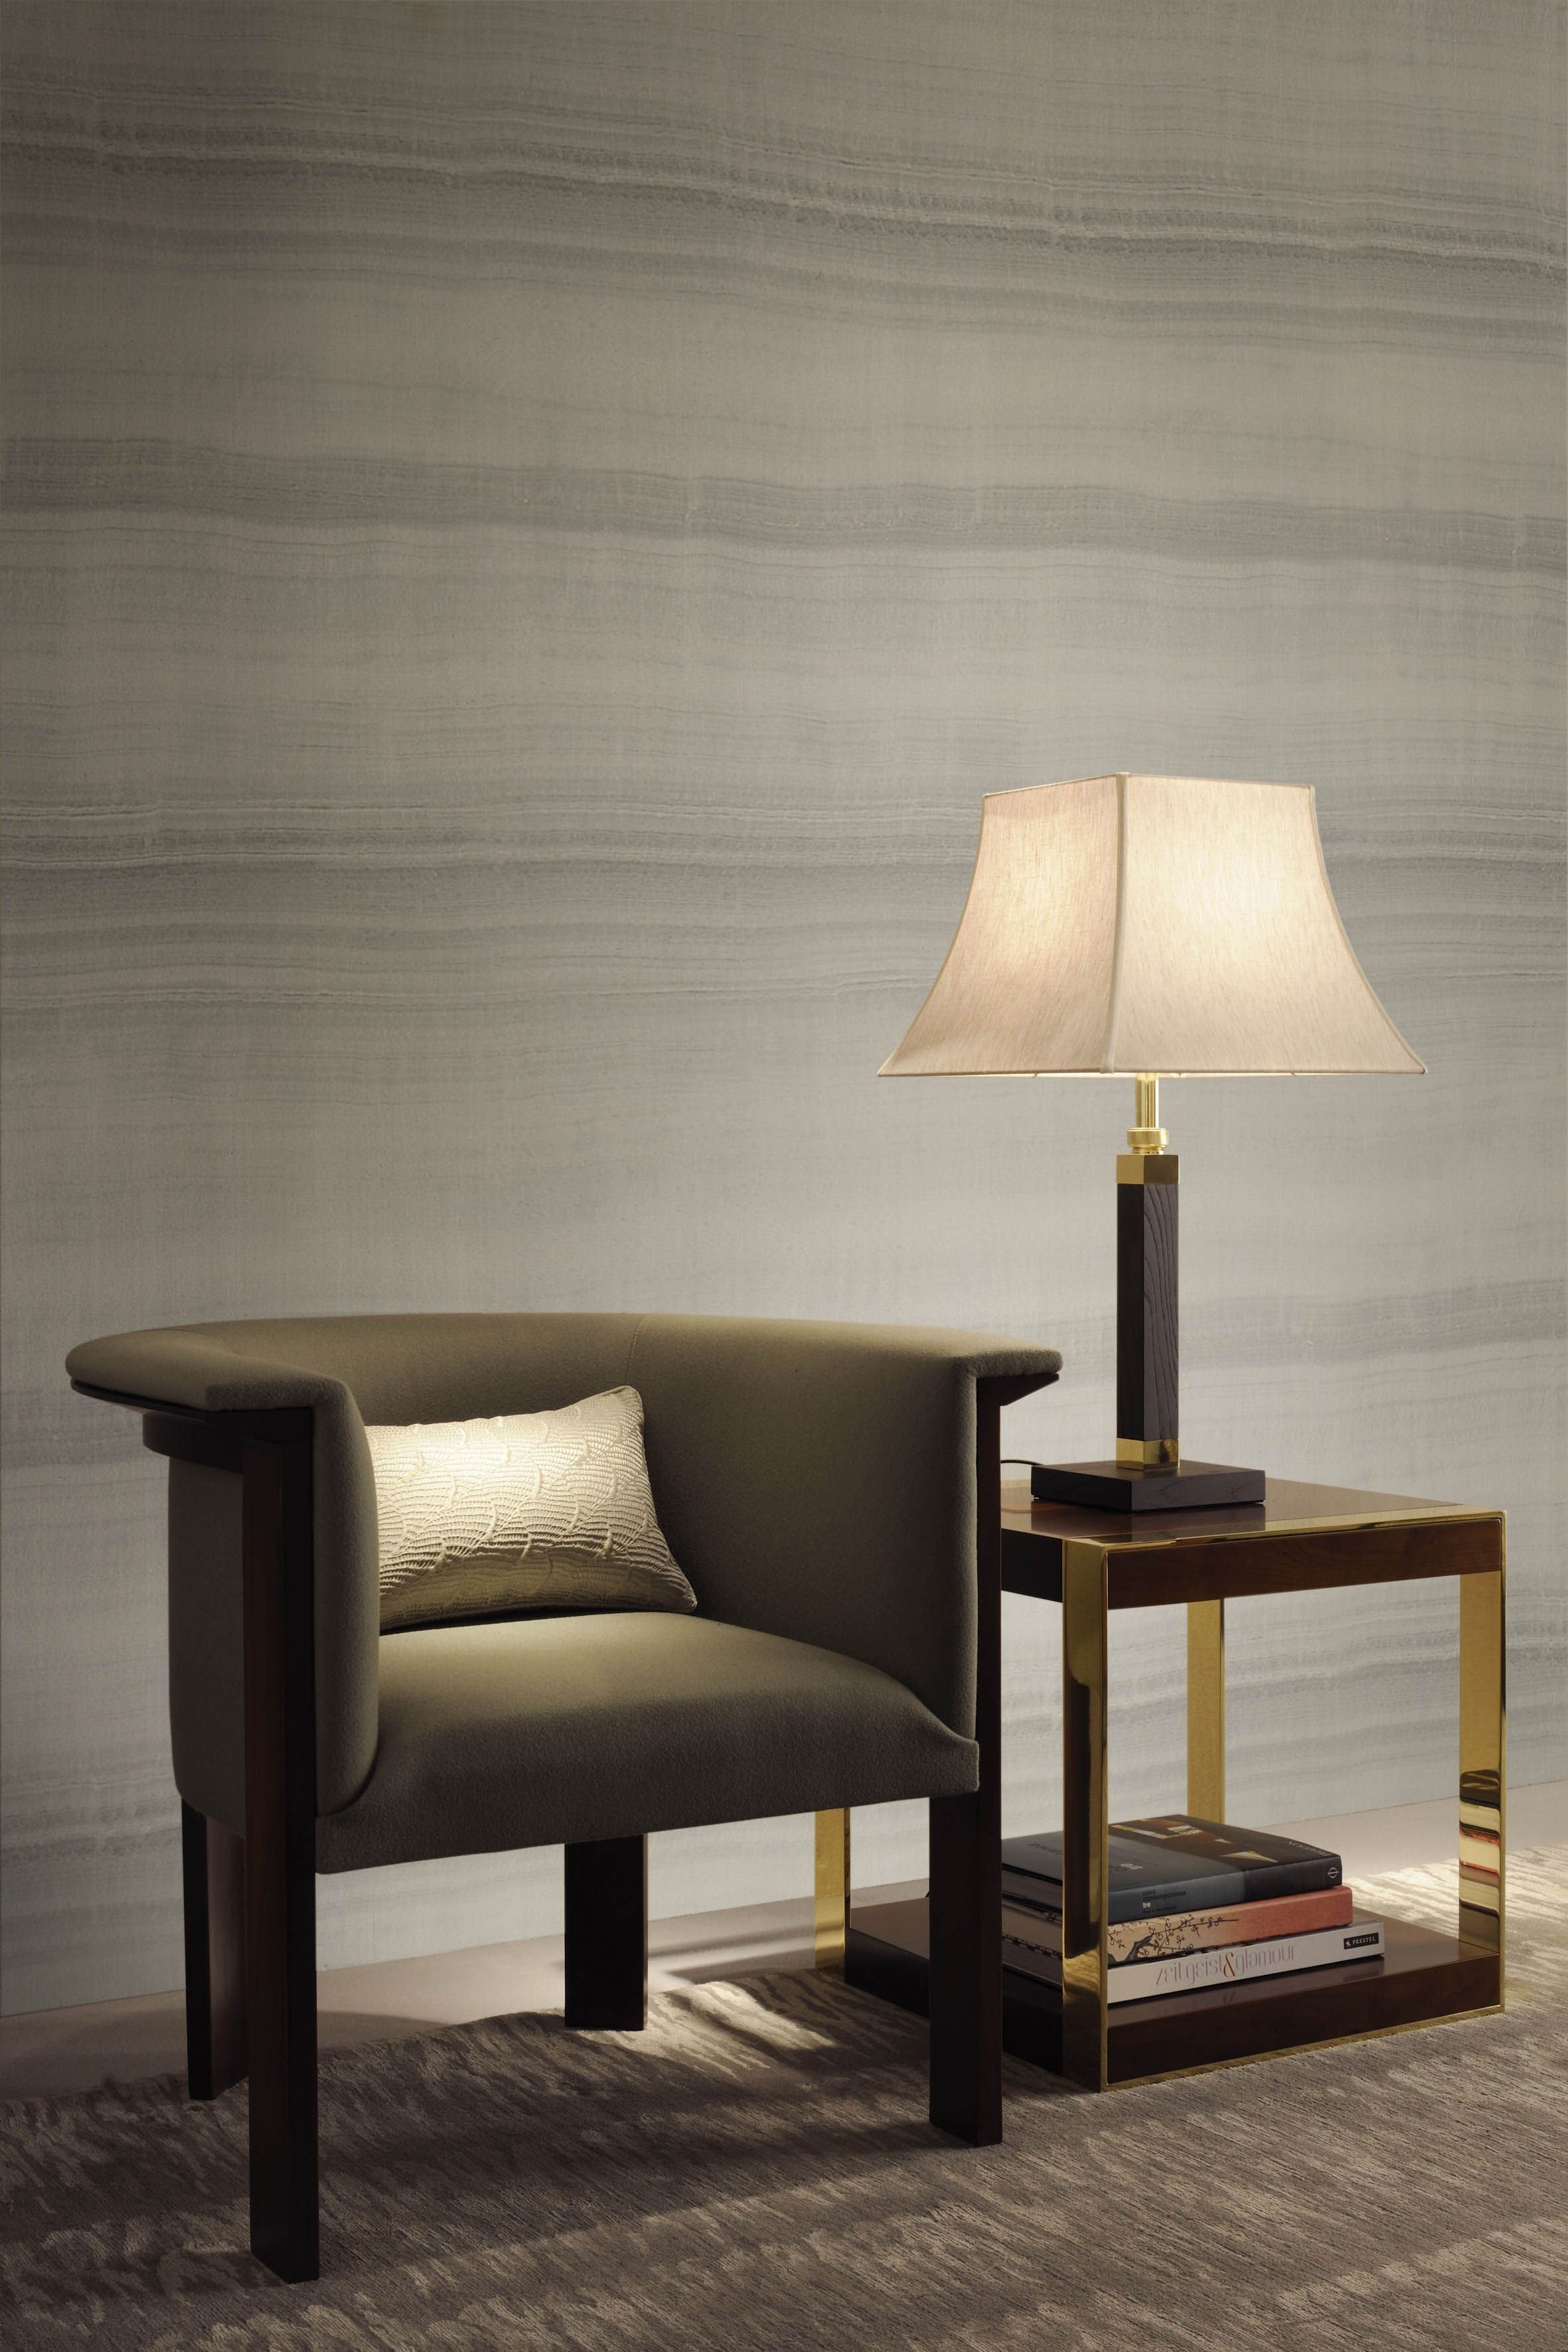 Armani casa giorgio armanis latest home collection armani home art deco furniture